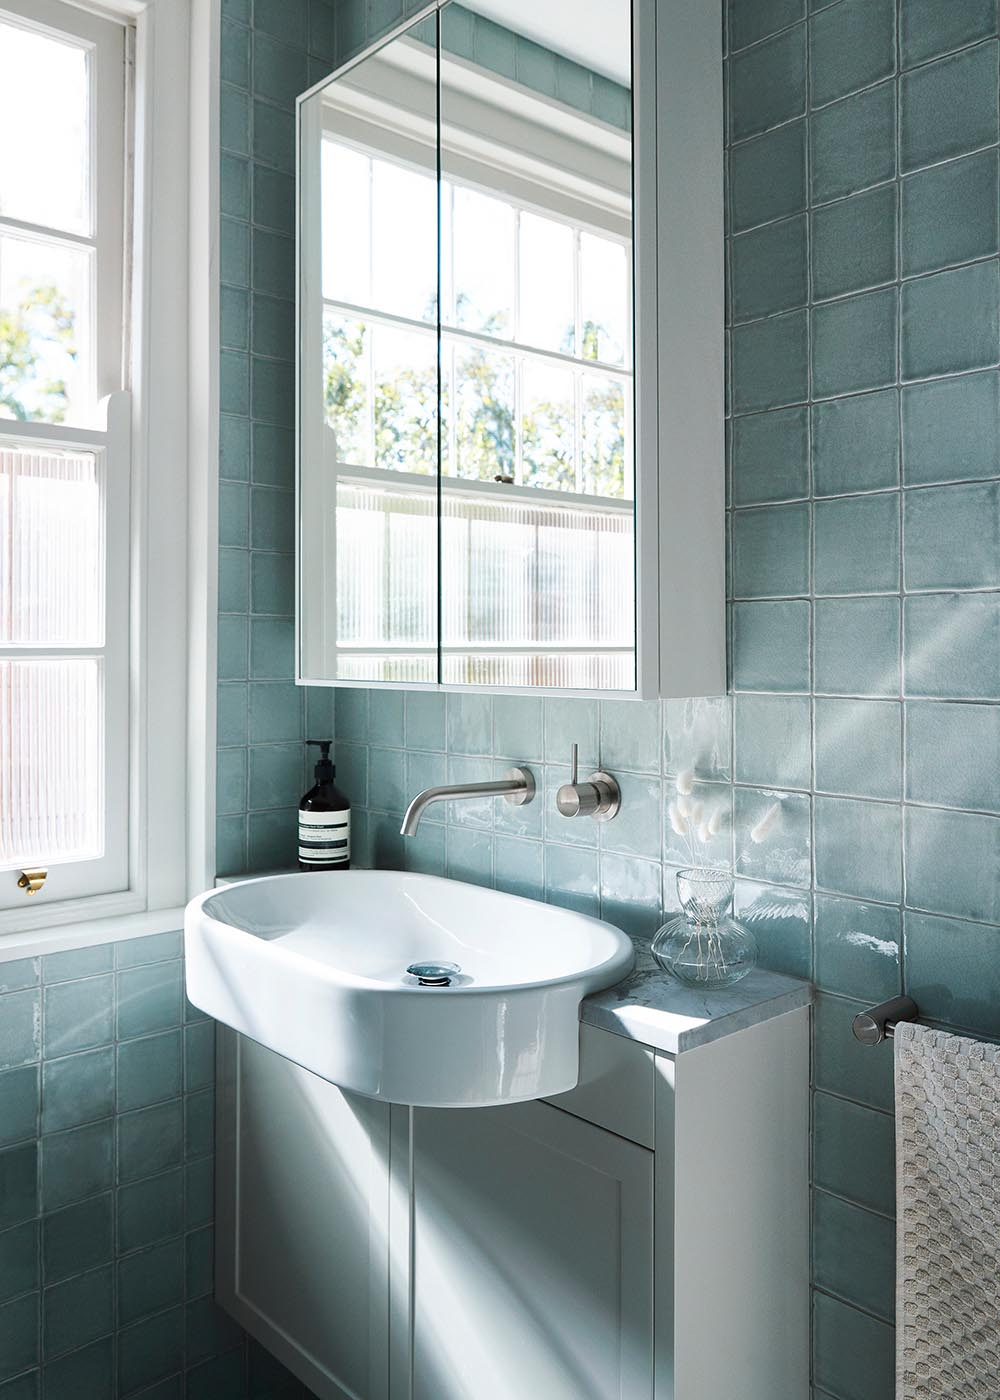 Soft blue handmade tiles employed in the bathroom offer a sense of restrained luxury.